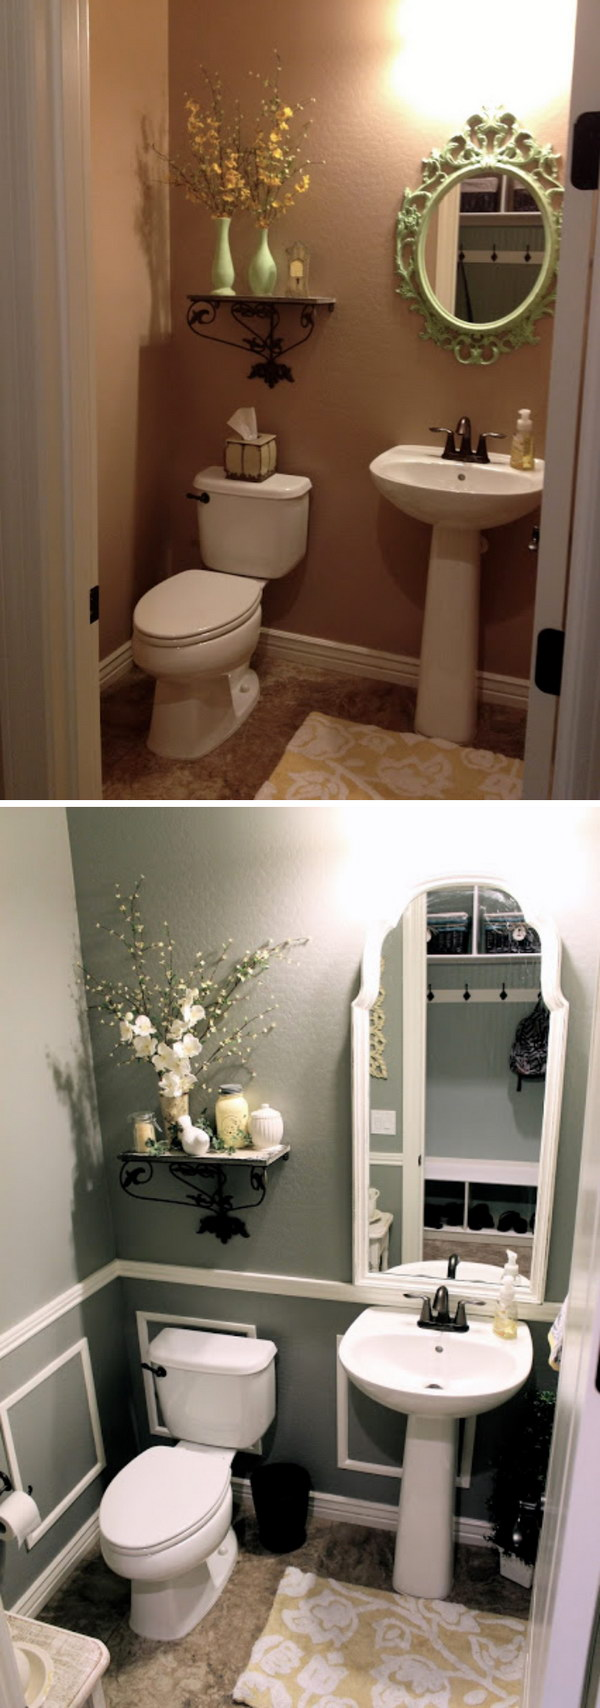 cheap small bathroom makeovers before and after 20 awesome bathroom makeovers hative 17718